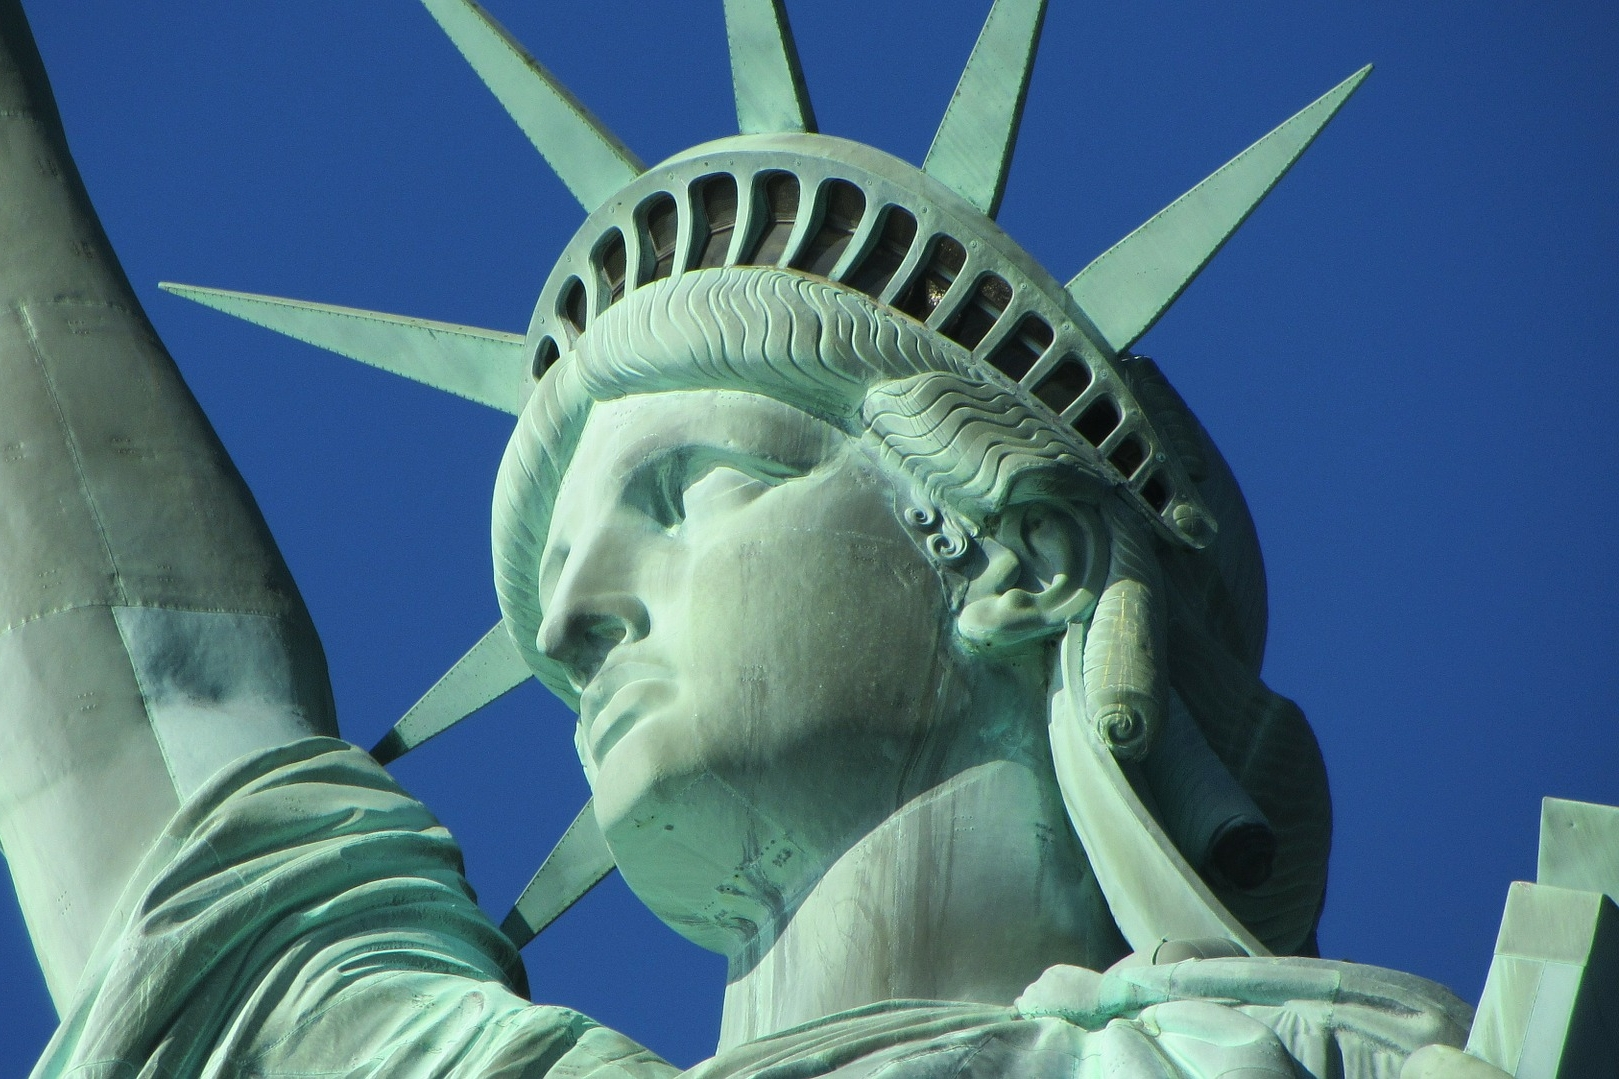 statue-of-liberty-image.jpg